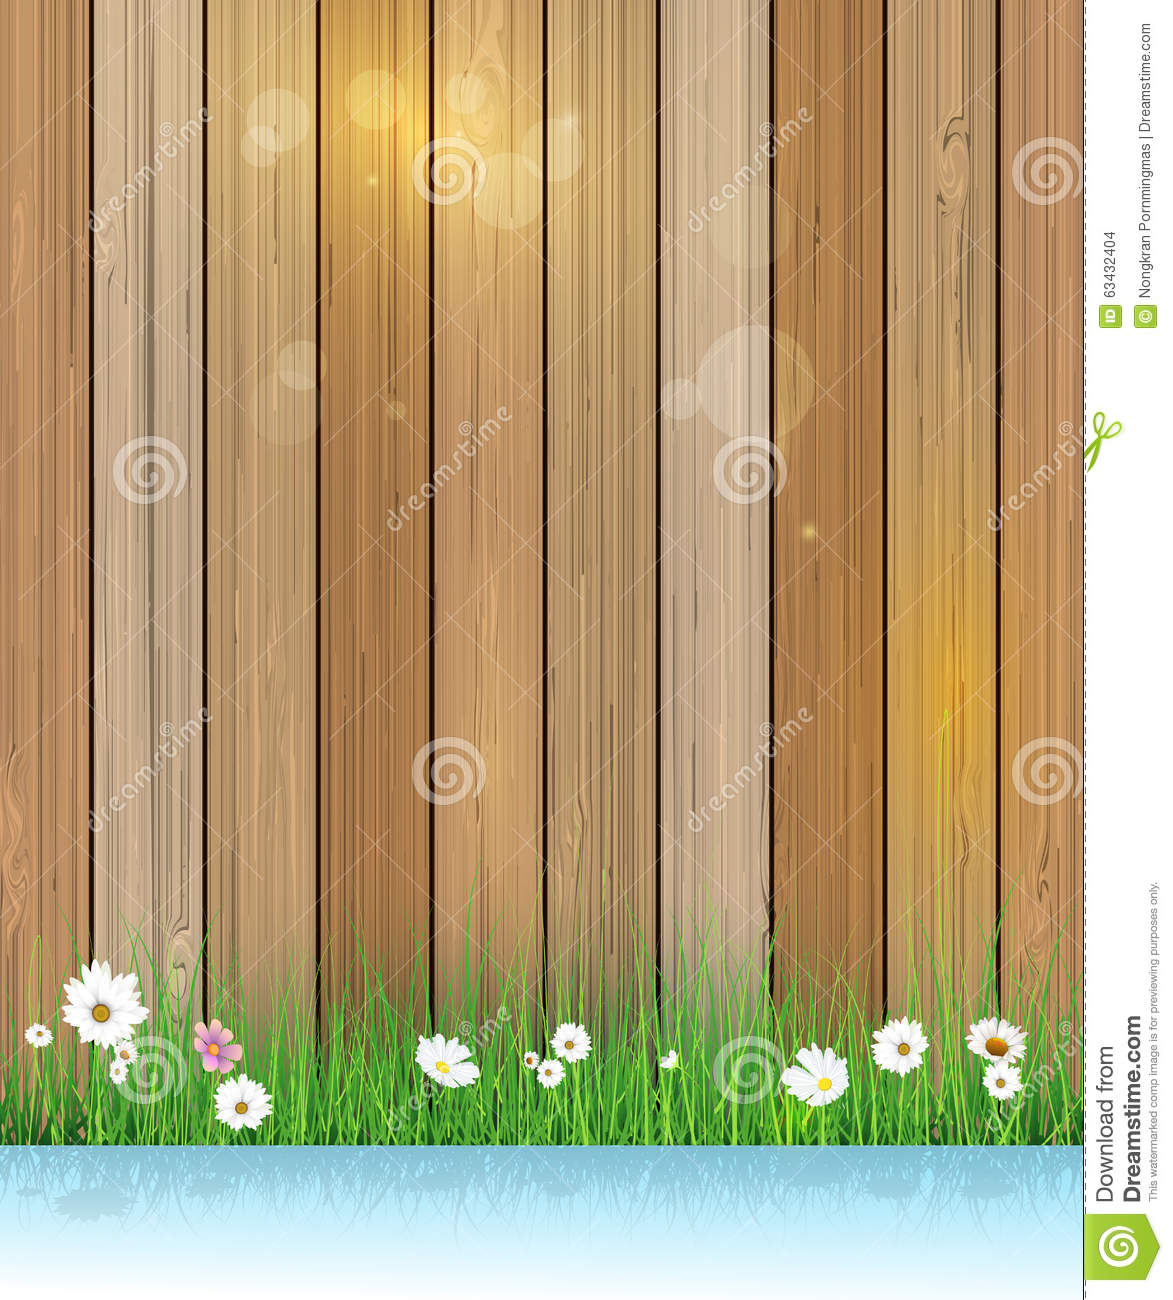 Spring Green Leaves And Flowers Background With Plants: Spring Nature Background. Green Grass And Leaf Plant Over